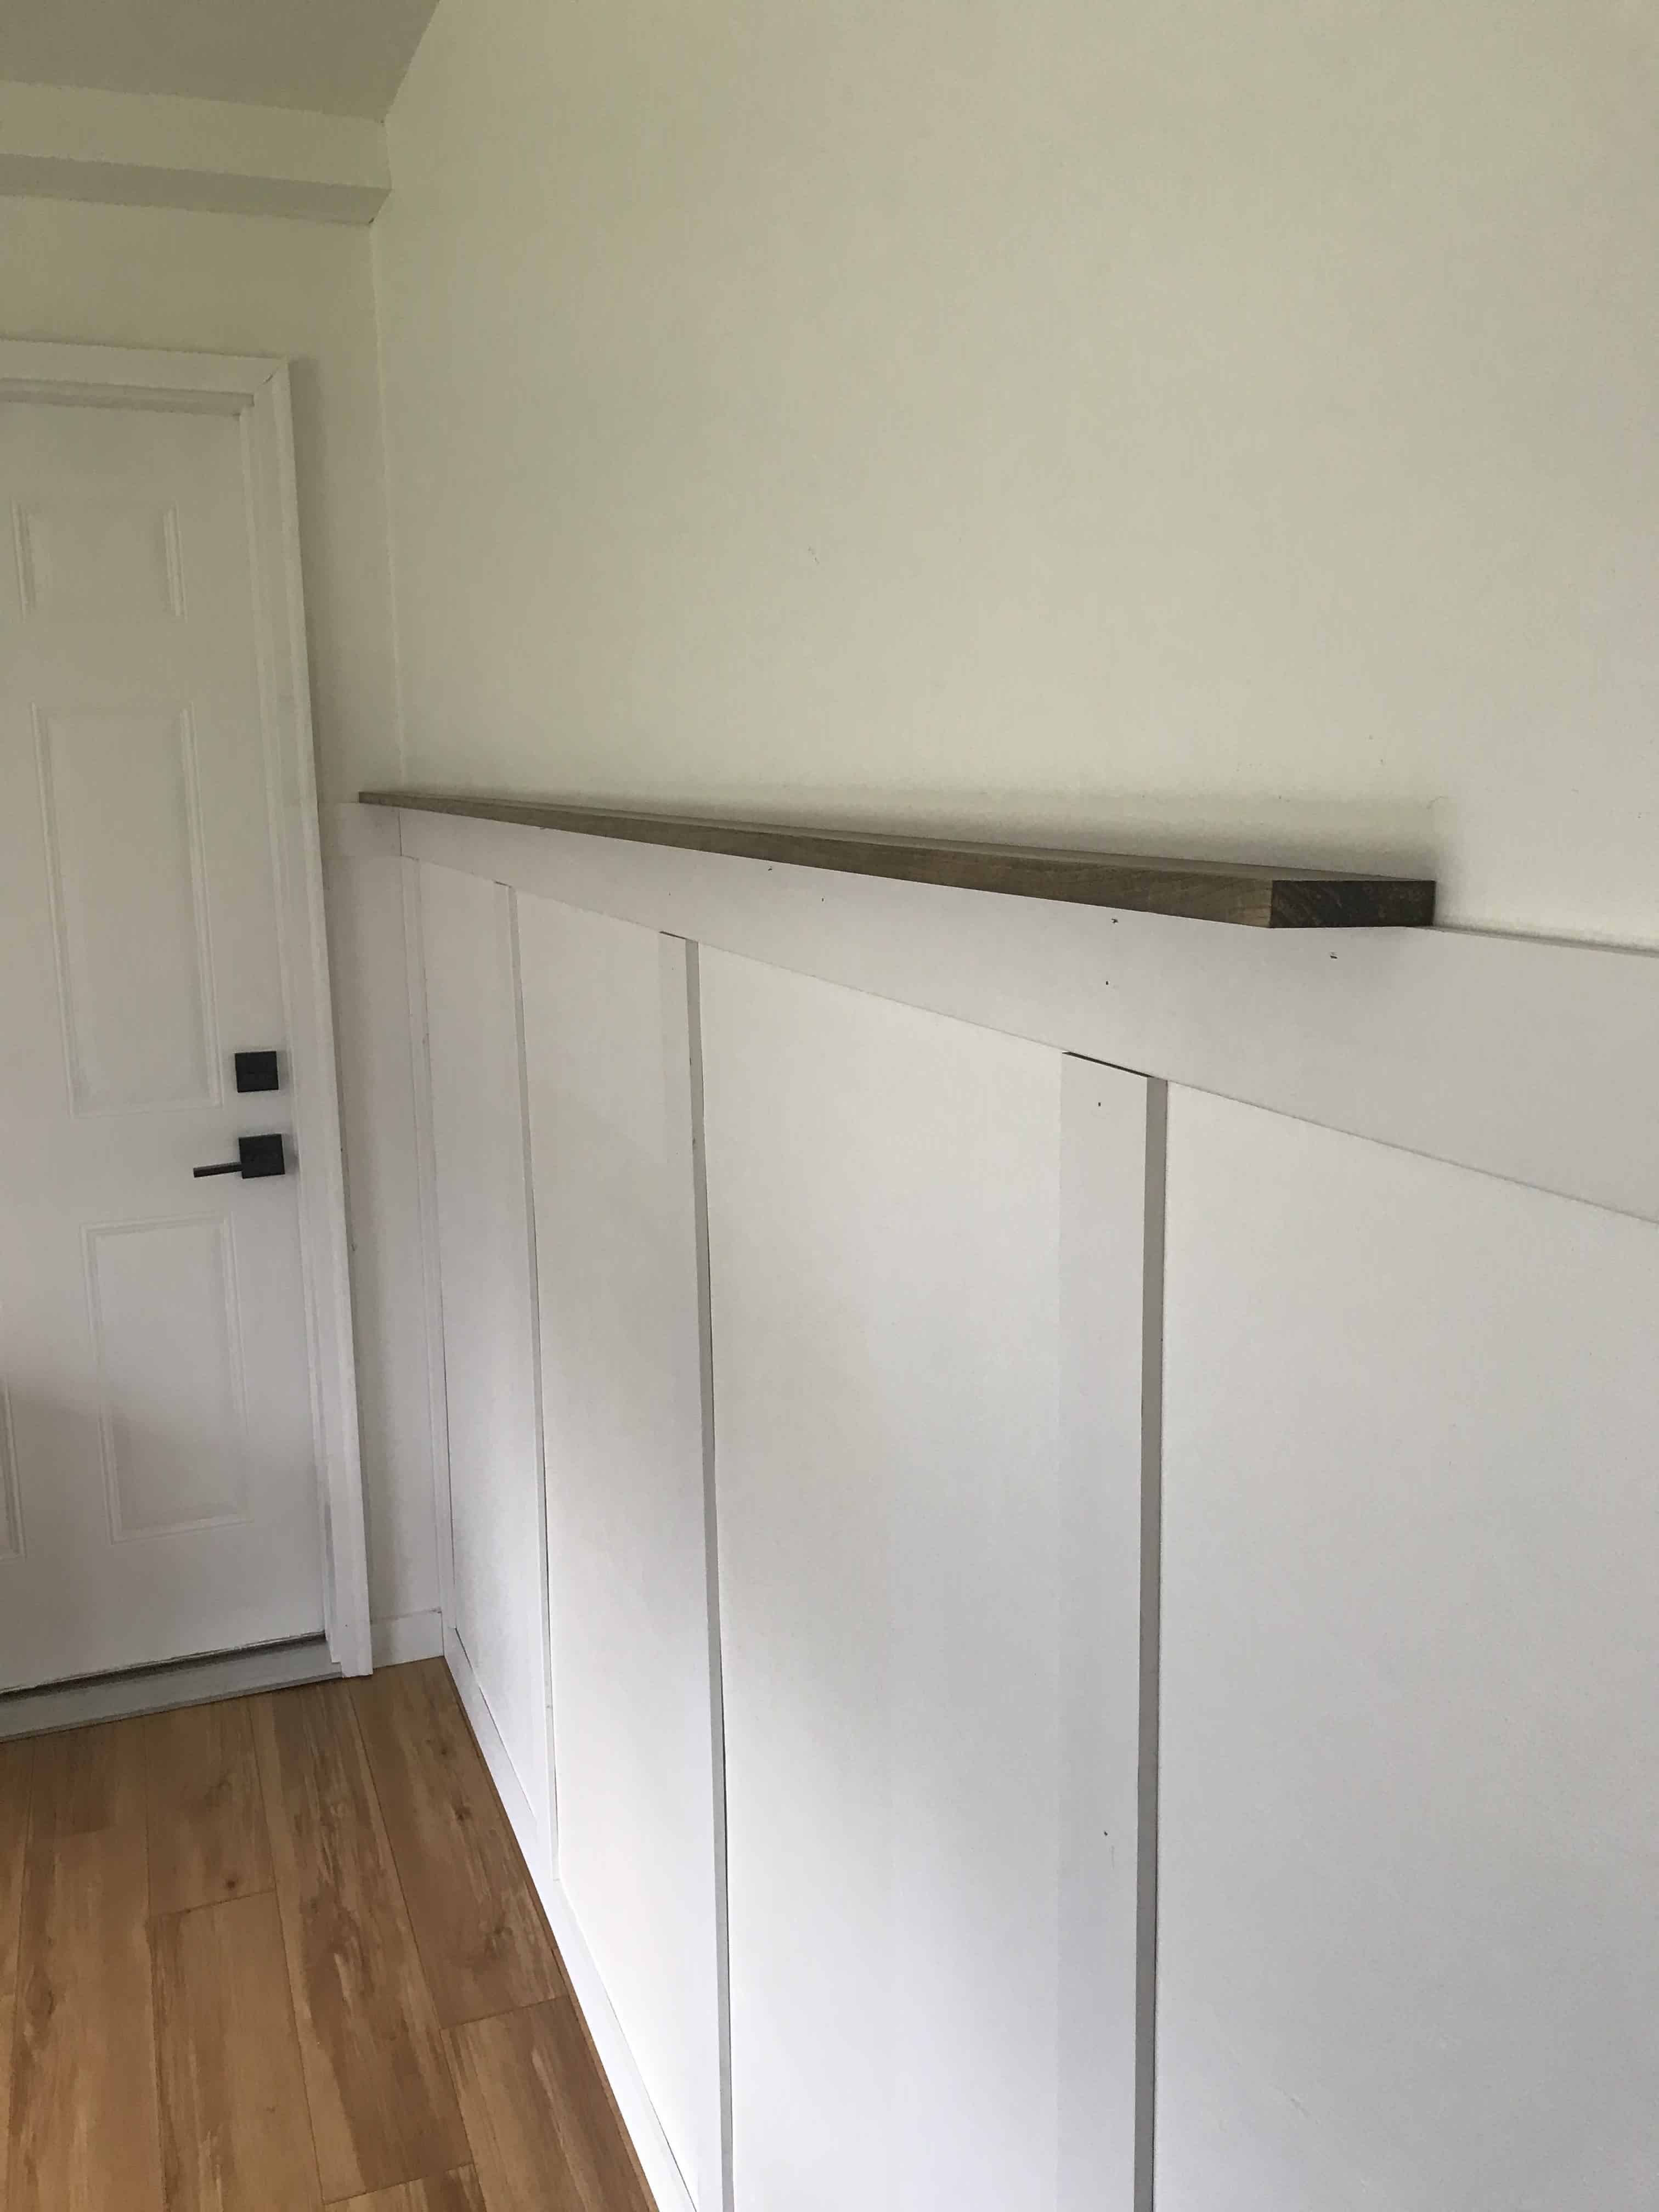 DIY Wainscoting with Picture Ledge